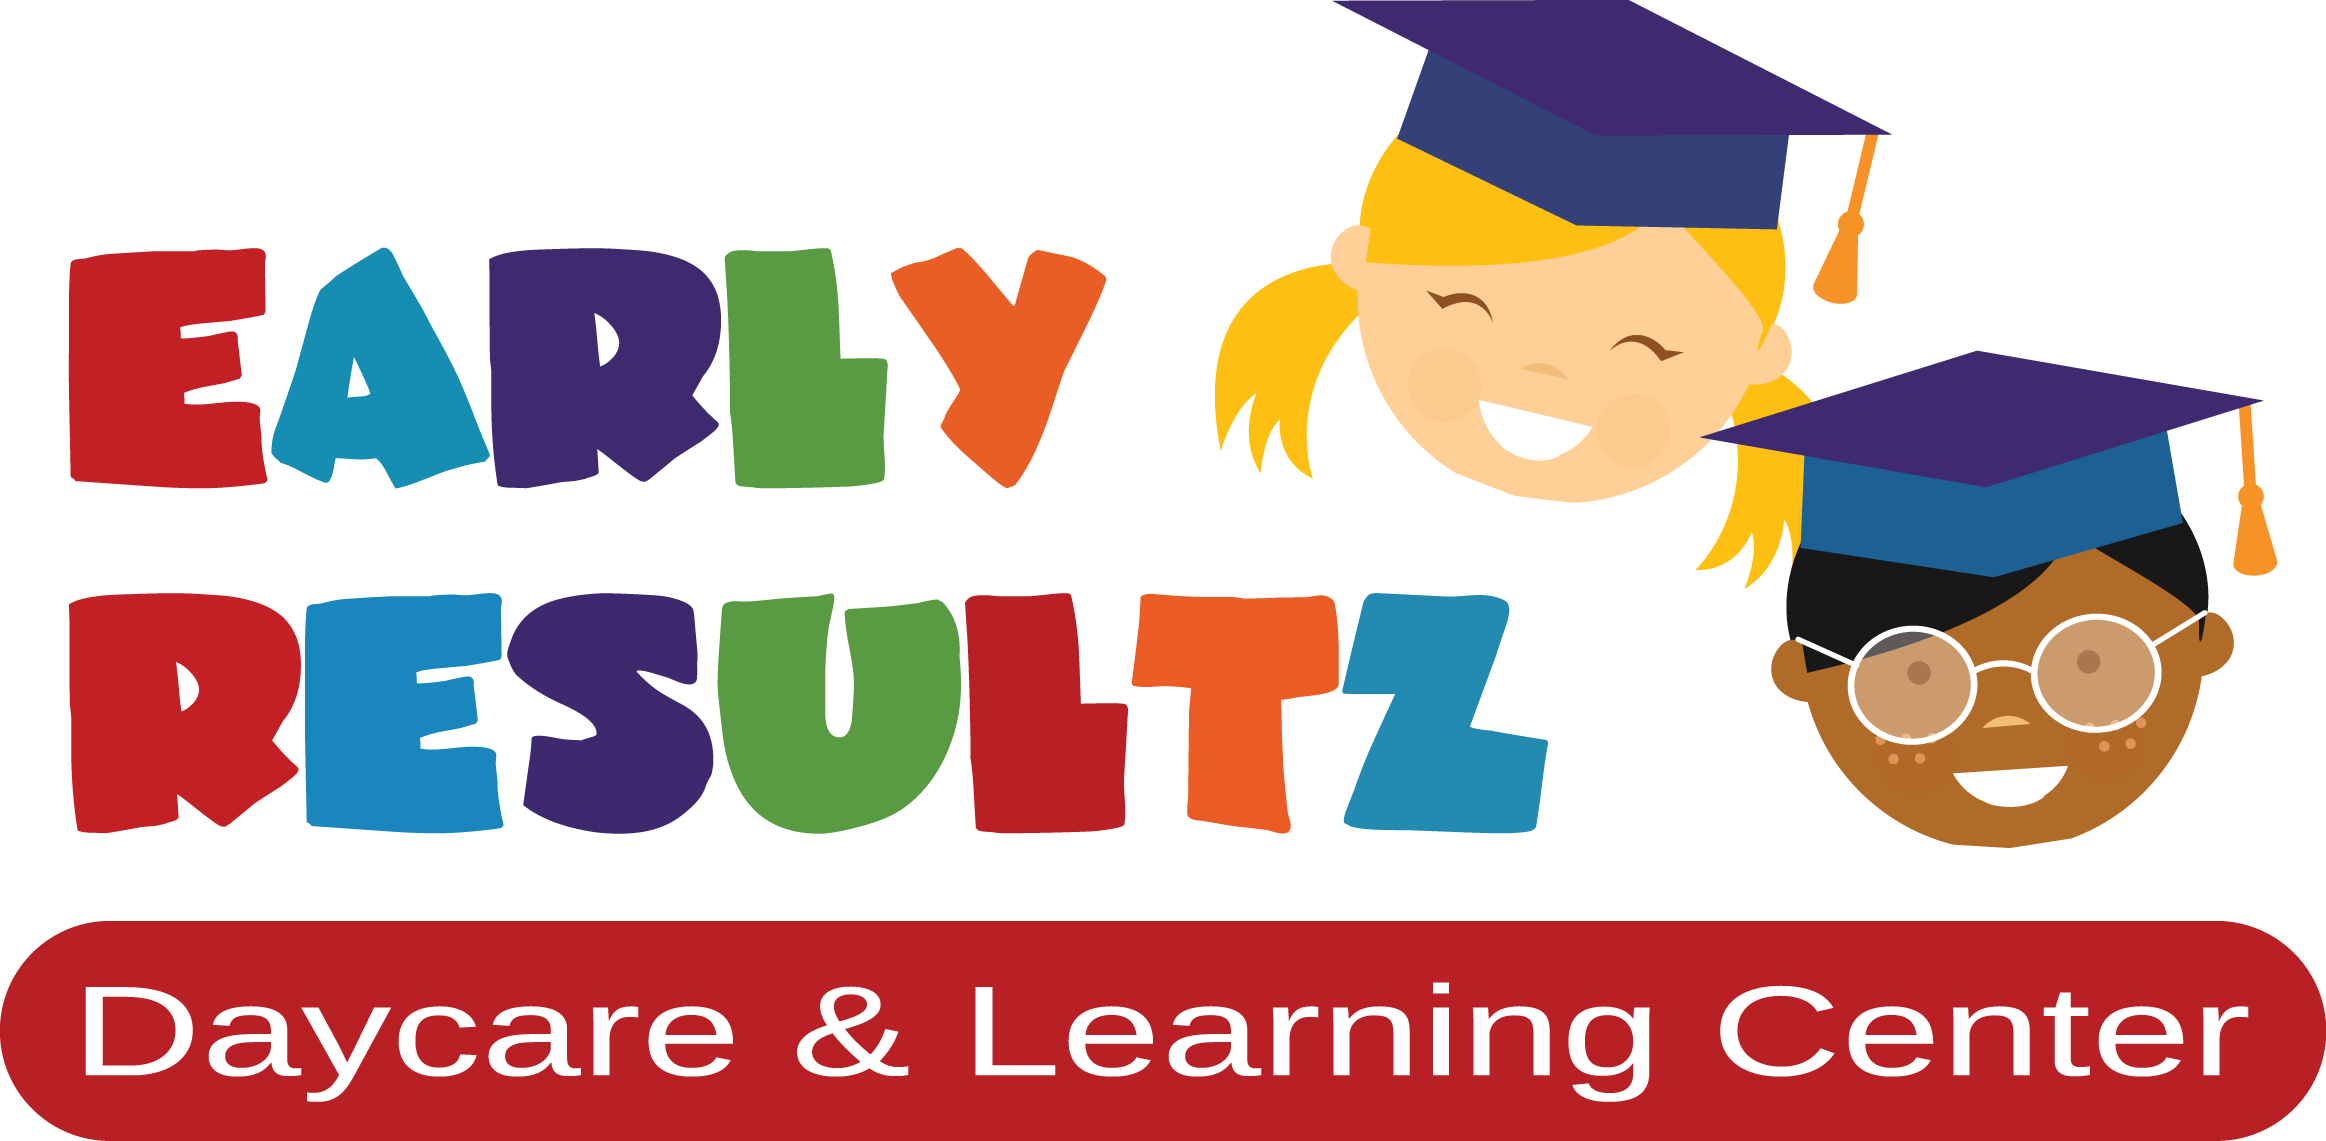 Daycare clipart graduation. Early resultz in suffolk